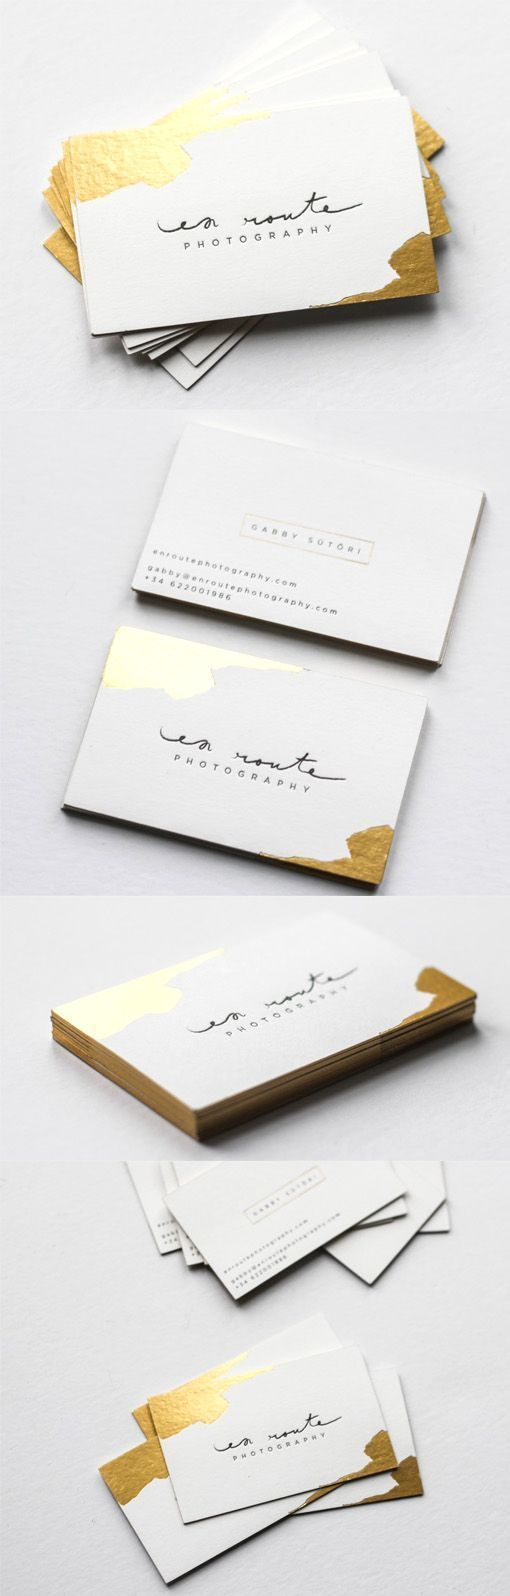 En Route Photography Business Card I Love The Use Of Gold Foil